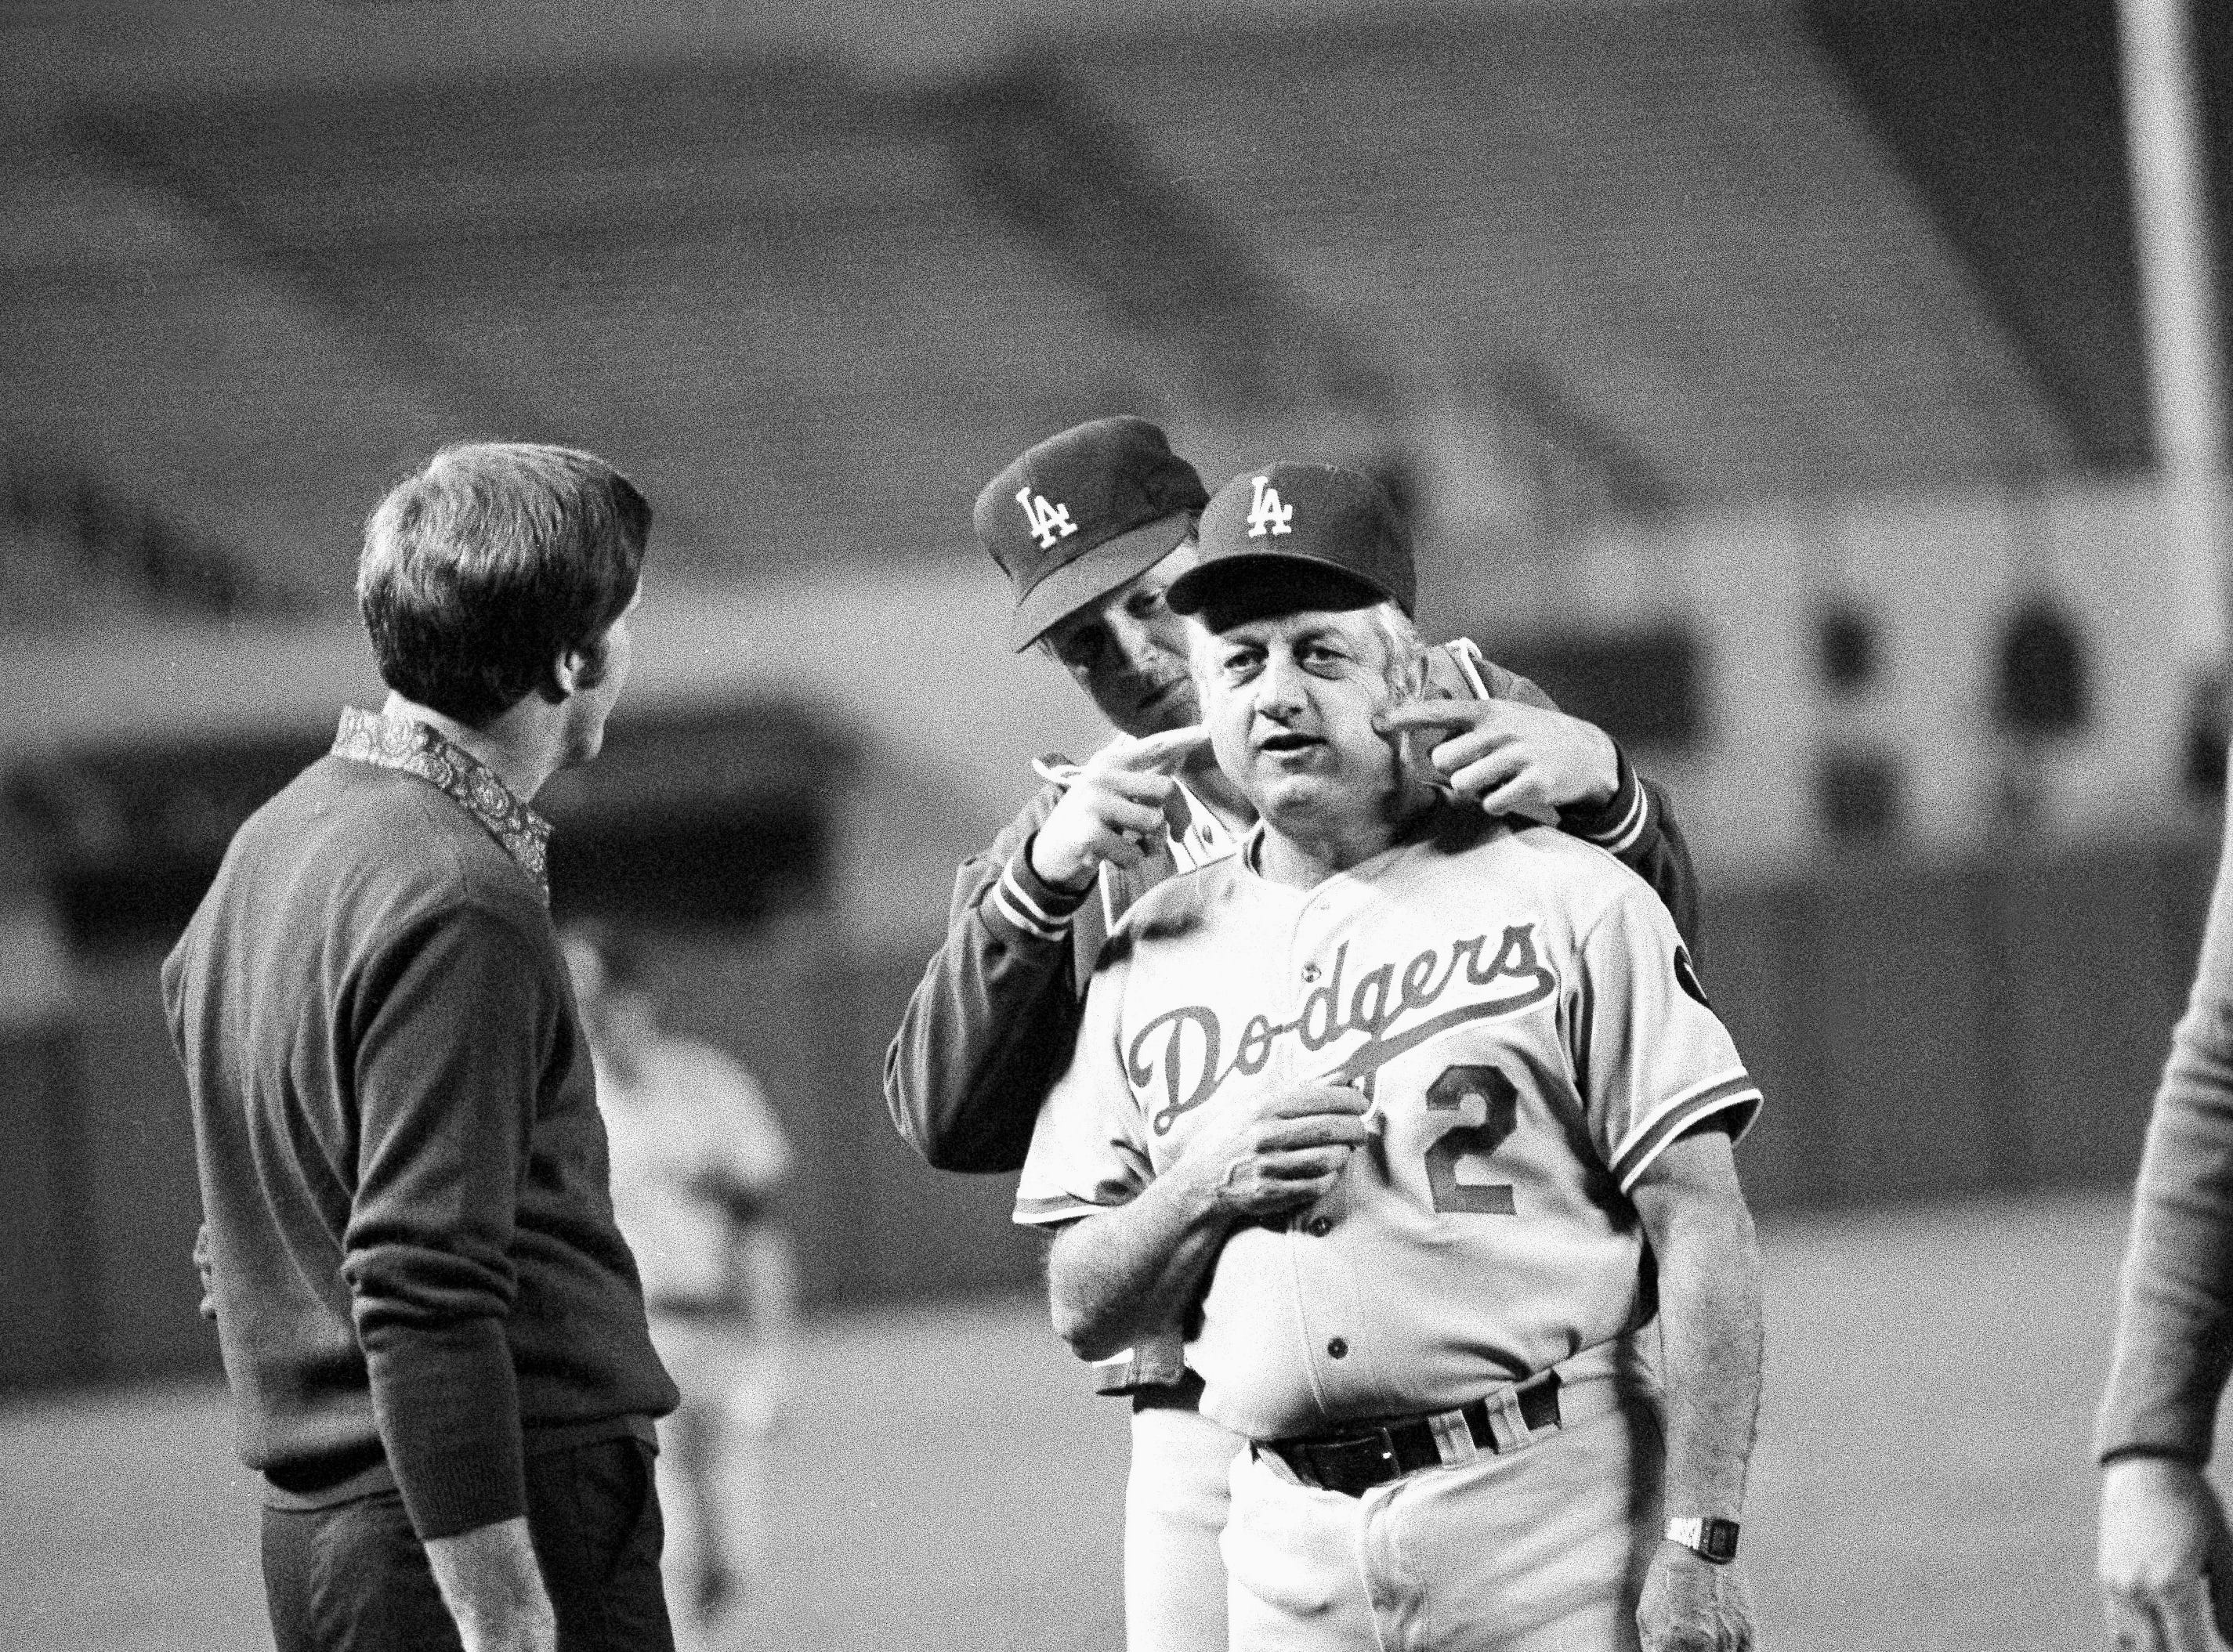 Los Angeles Dodgers Burt Hooton, left, clowns with manager Tom Lasorda during workouts at New York?s Yankee Stadium on Thursday, Oct. 12, 1978 in New York. Hooten is checking to see if Lasorda had enough ?jaw exercises? for Friday?s third World Series game against the New York Yankees. (AP Photo/ John Filo)